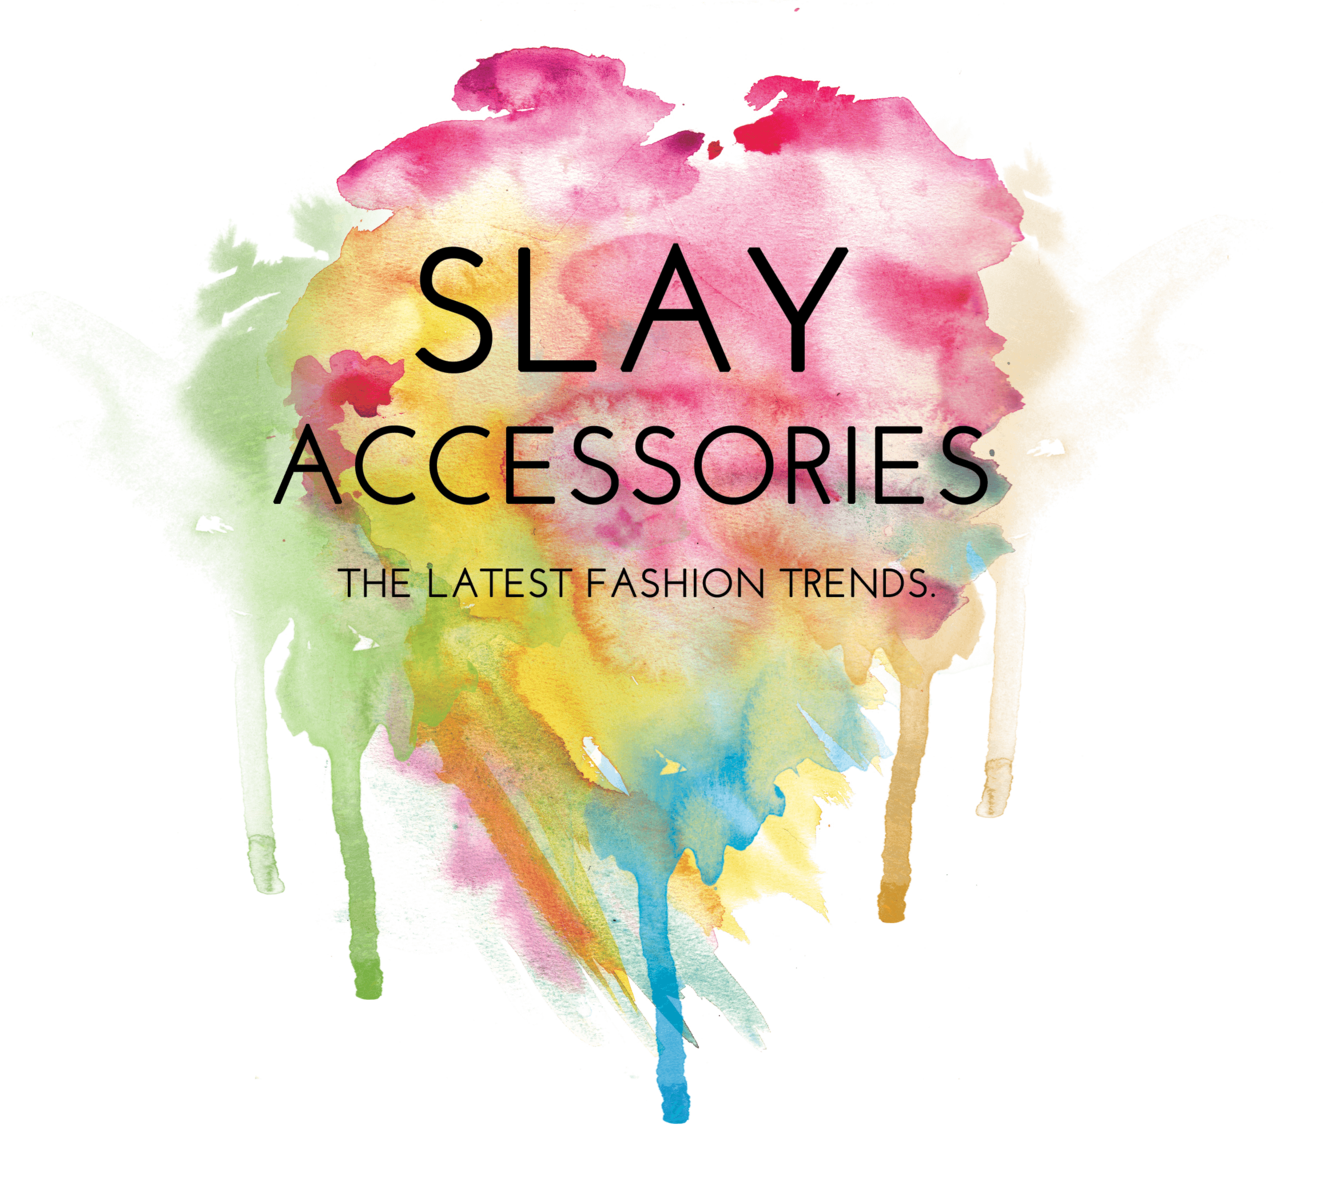 Slay Accessories